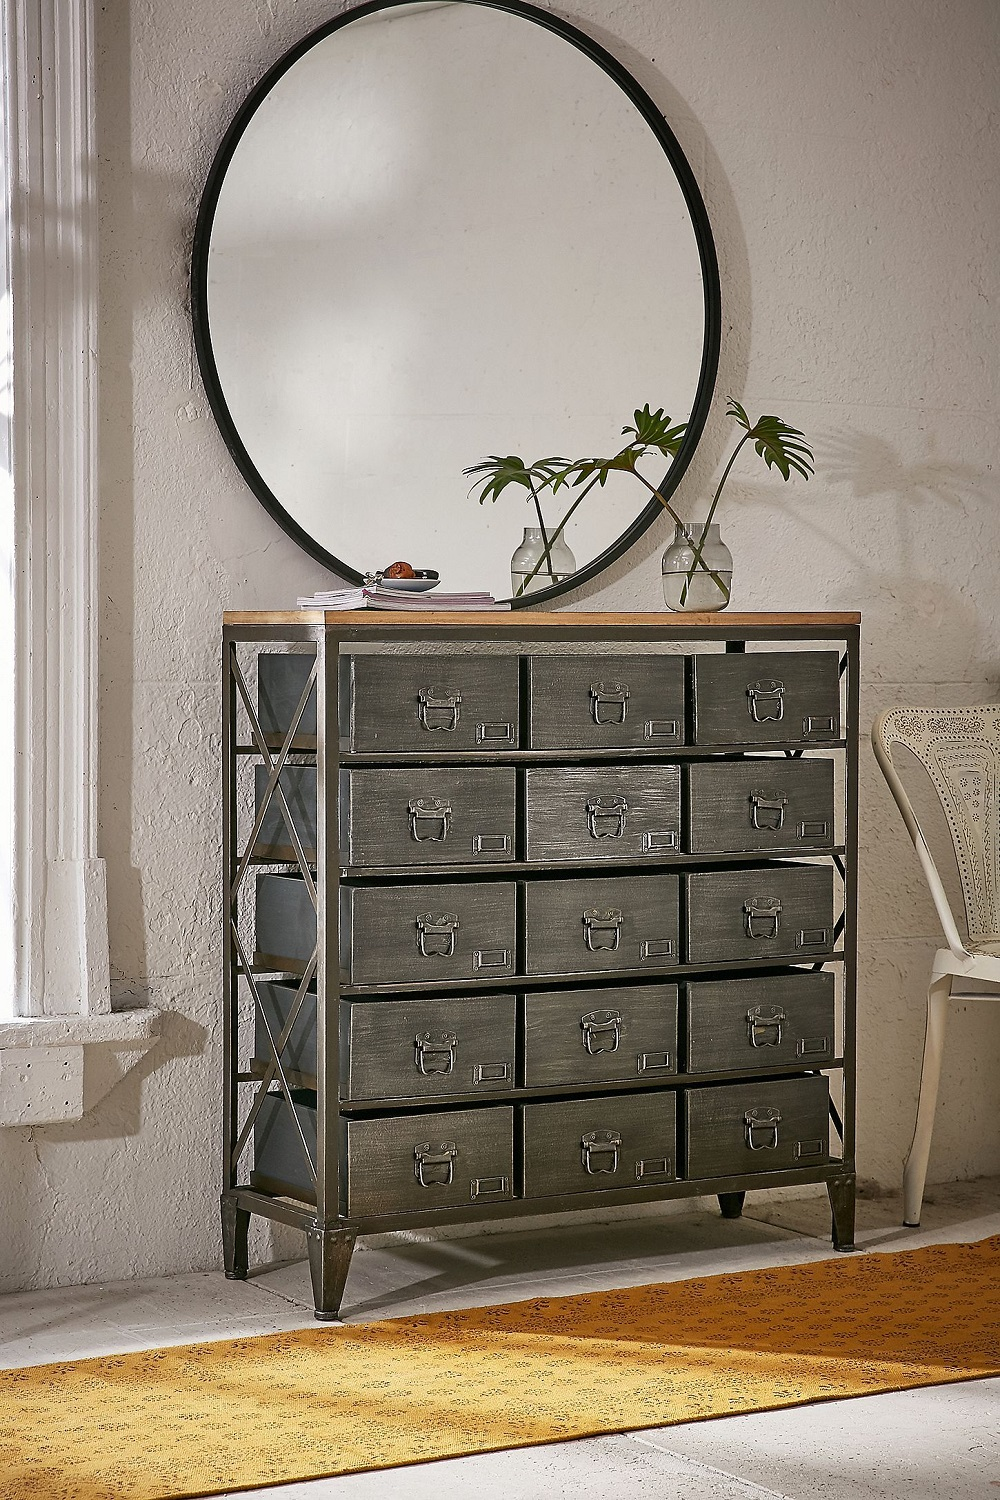 t3-64 How to use a vintage pharmacy cabinet in your home decor